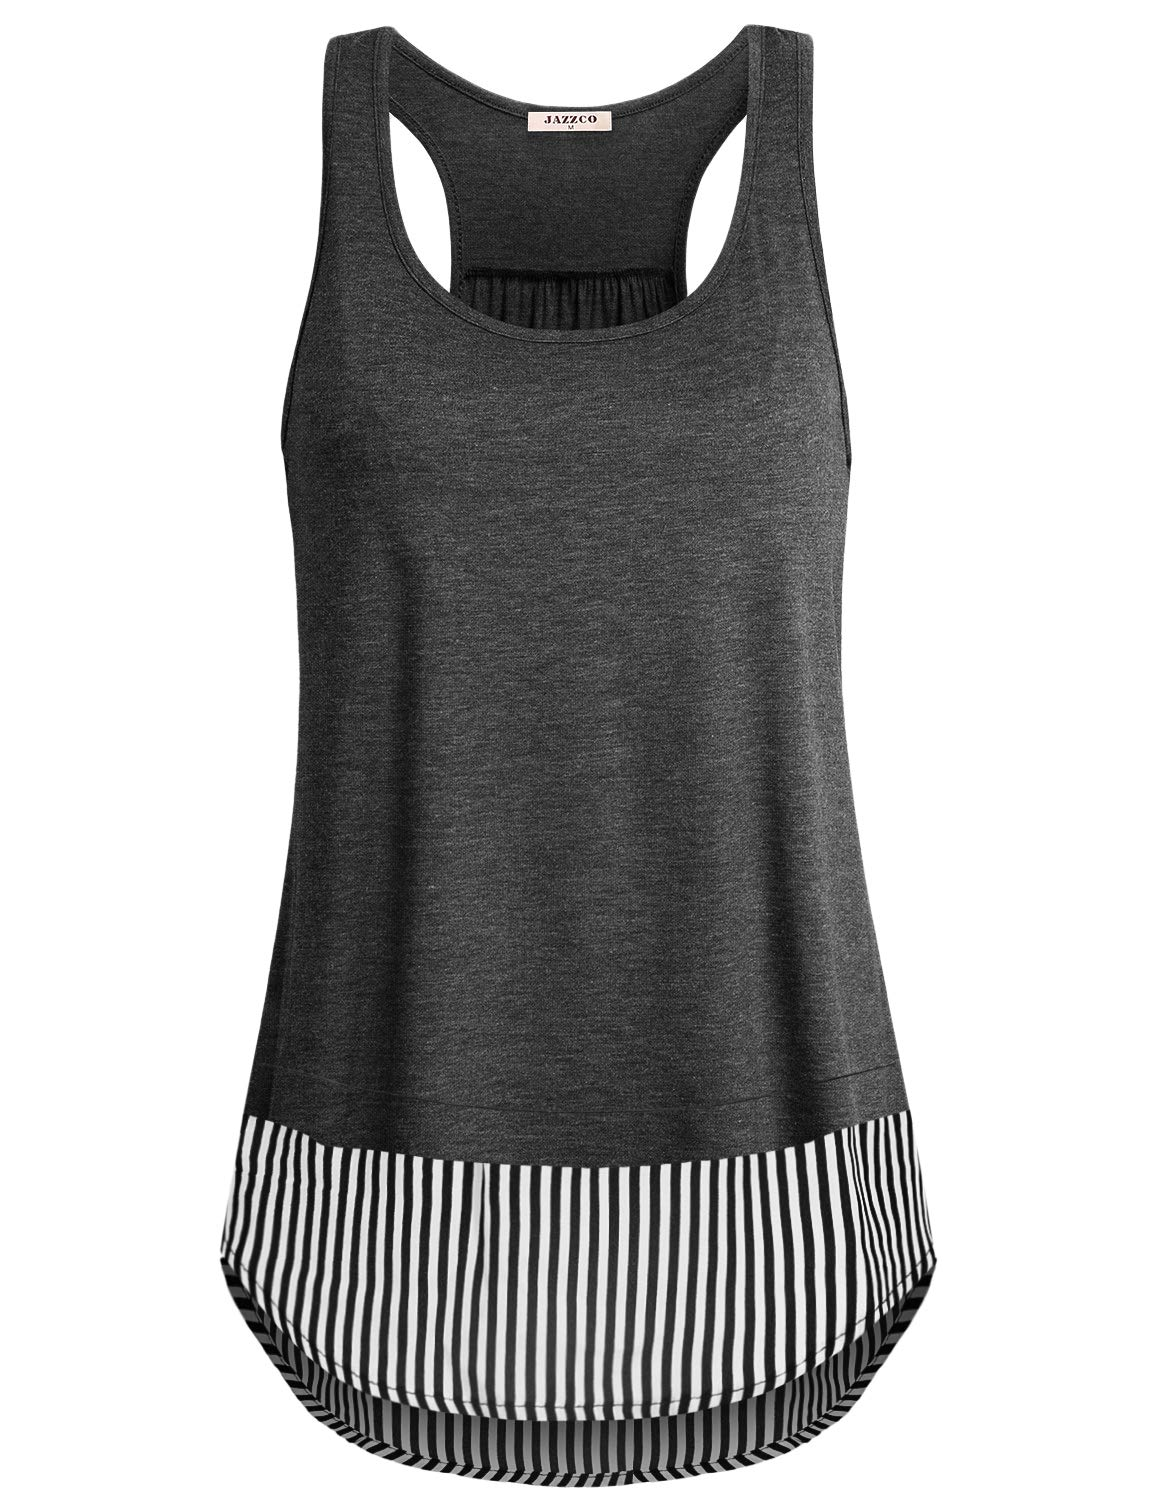 Jazzco Womens Scoop Neck Sleeveless Loose Fit Racerback Workout Splice Tank Top Regular and Plus Size